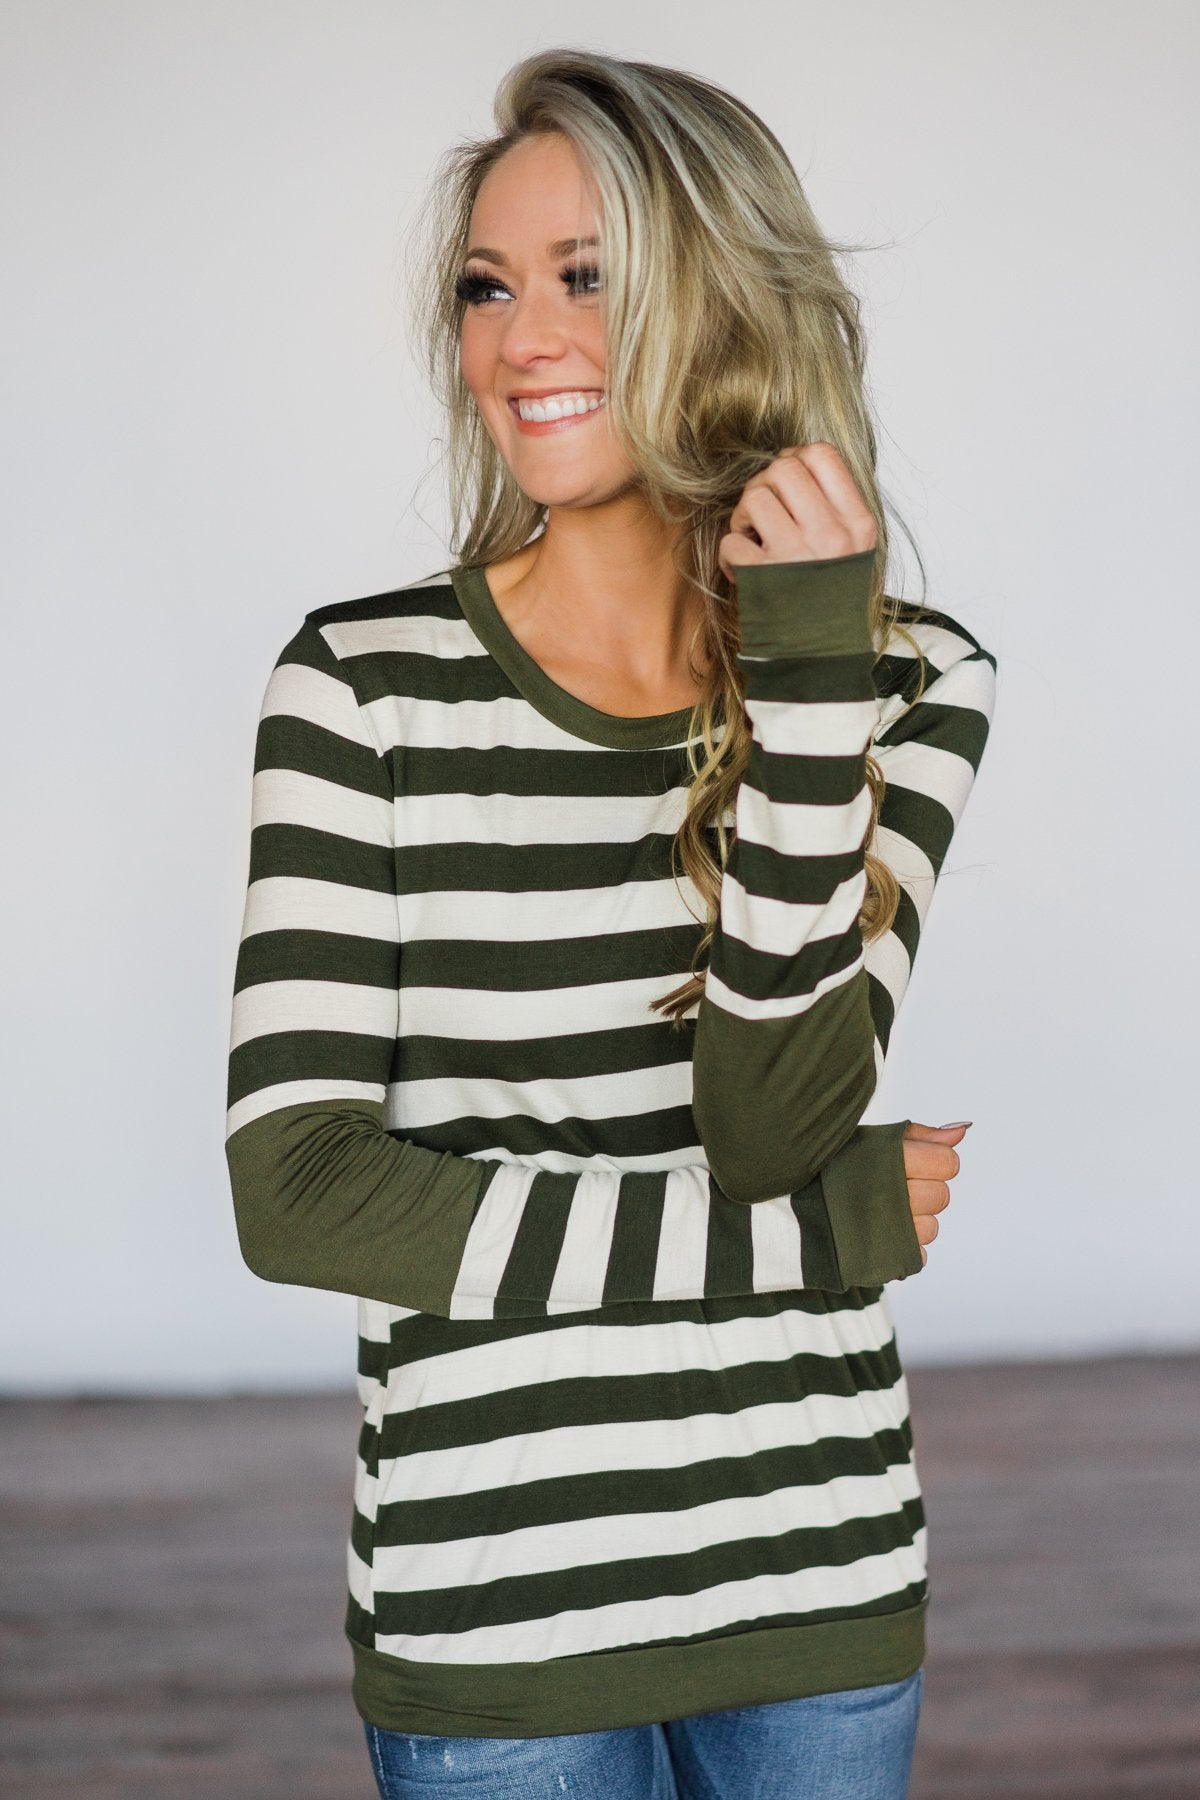 Dreams of Romance Olive Striped Top